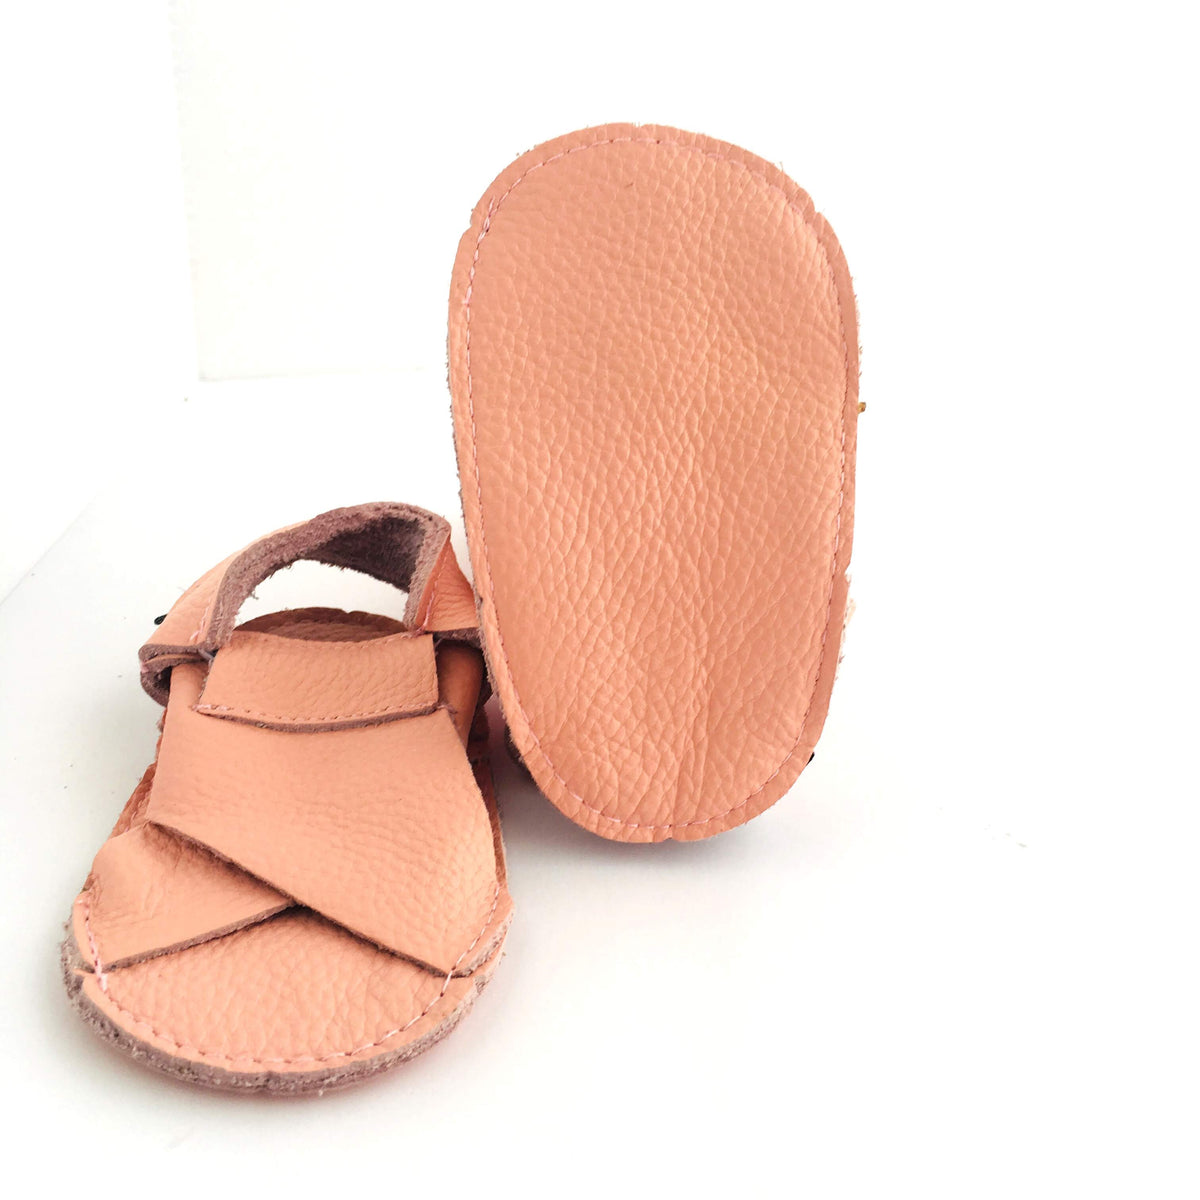 Cross Soft Sole Sandal Sole View Blush Pink Colour